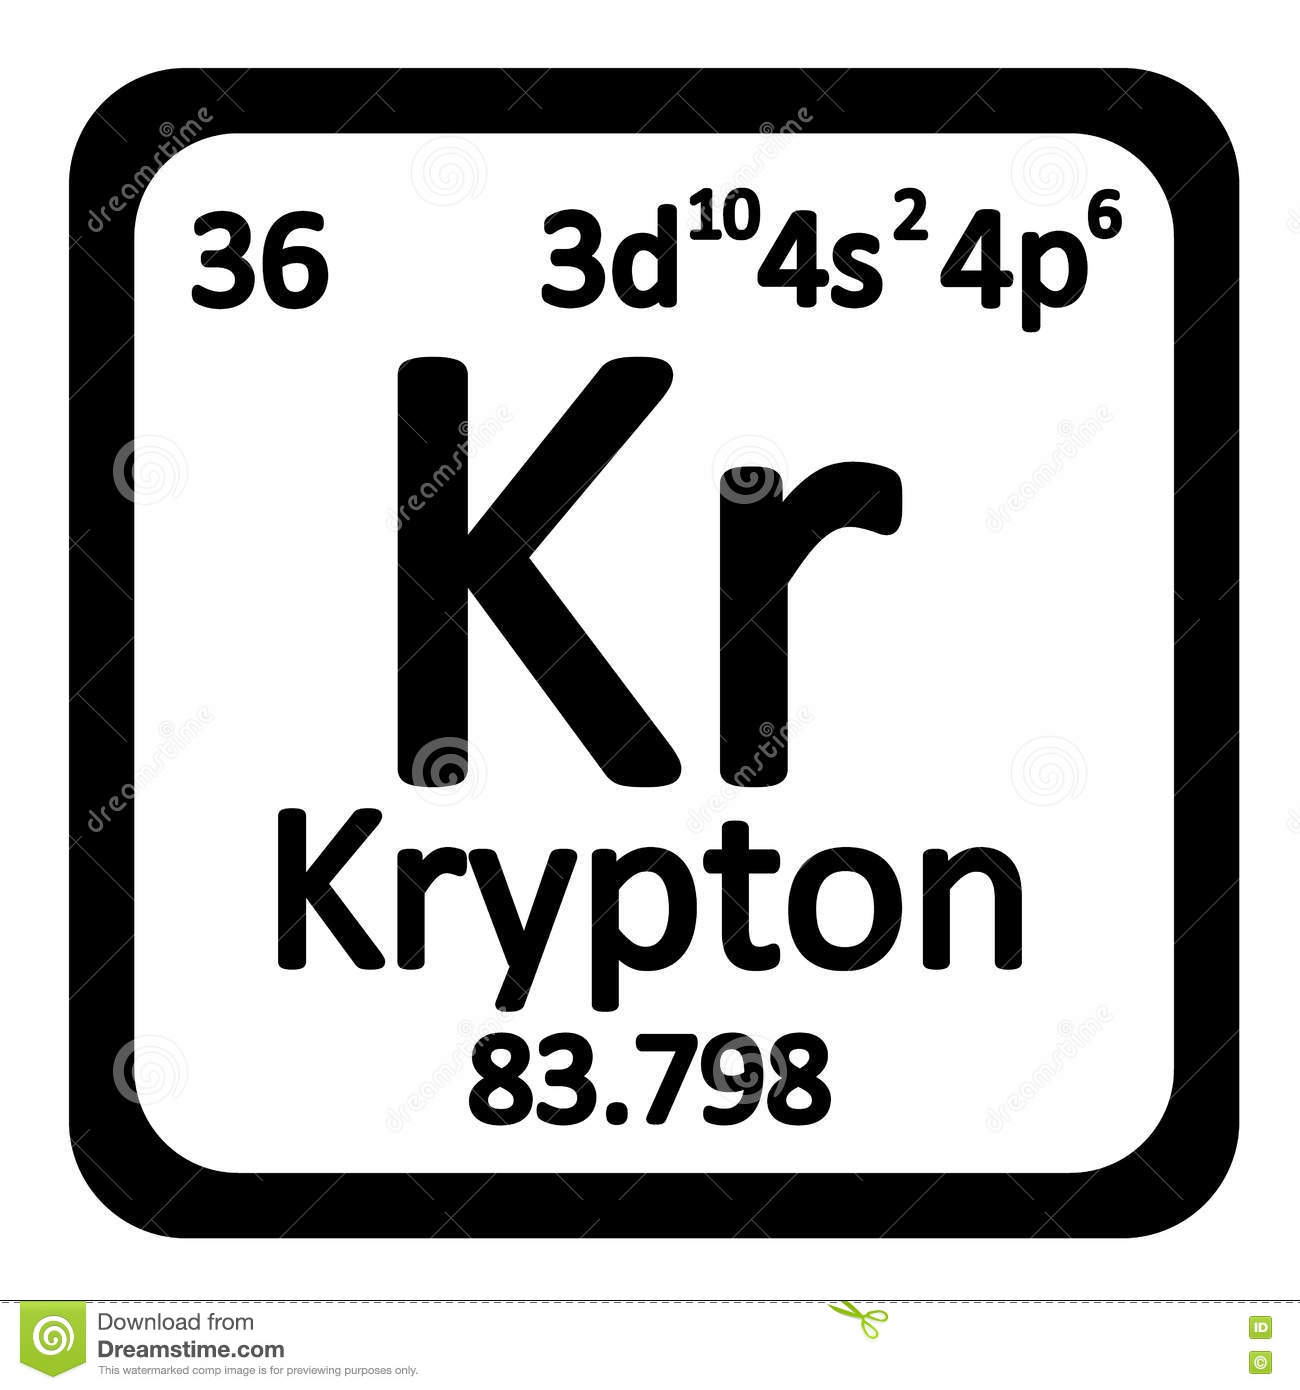 Periodic table element krypton icon stock illustration periodic table element krypton icon urtaz